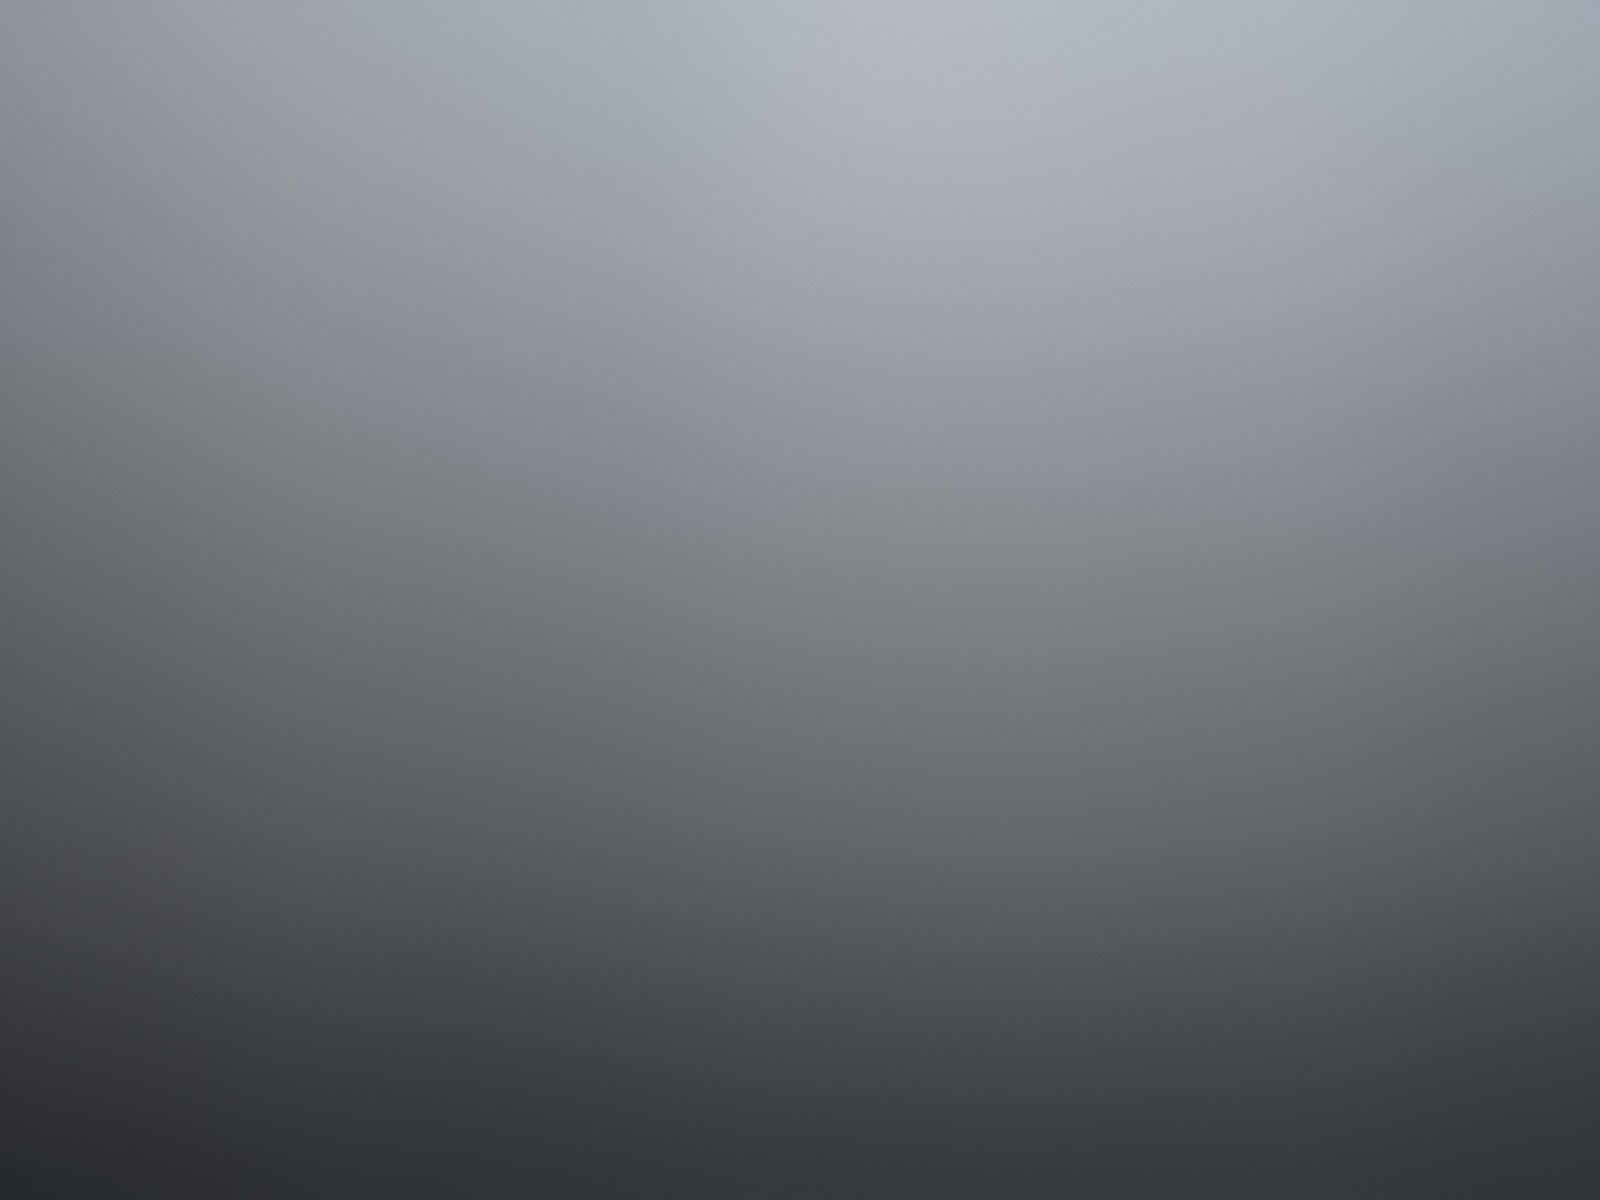 Gradient Grey Wallpaper for Desktop 1600x1200